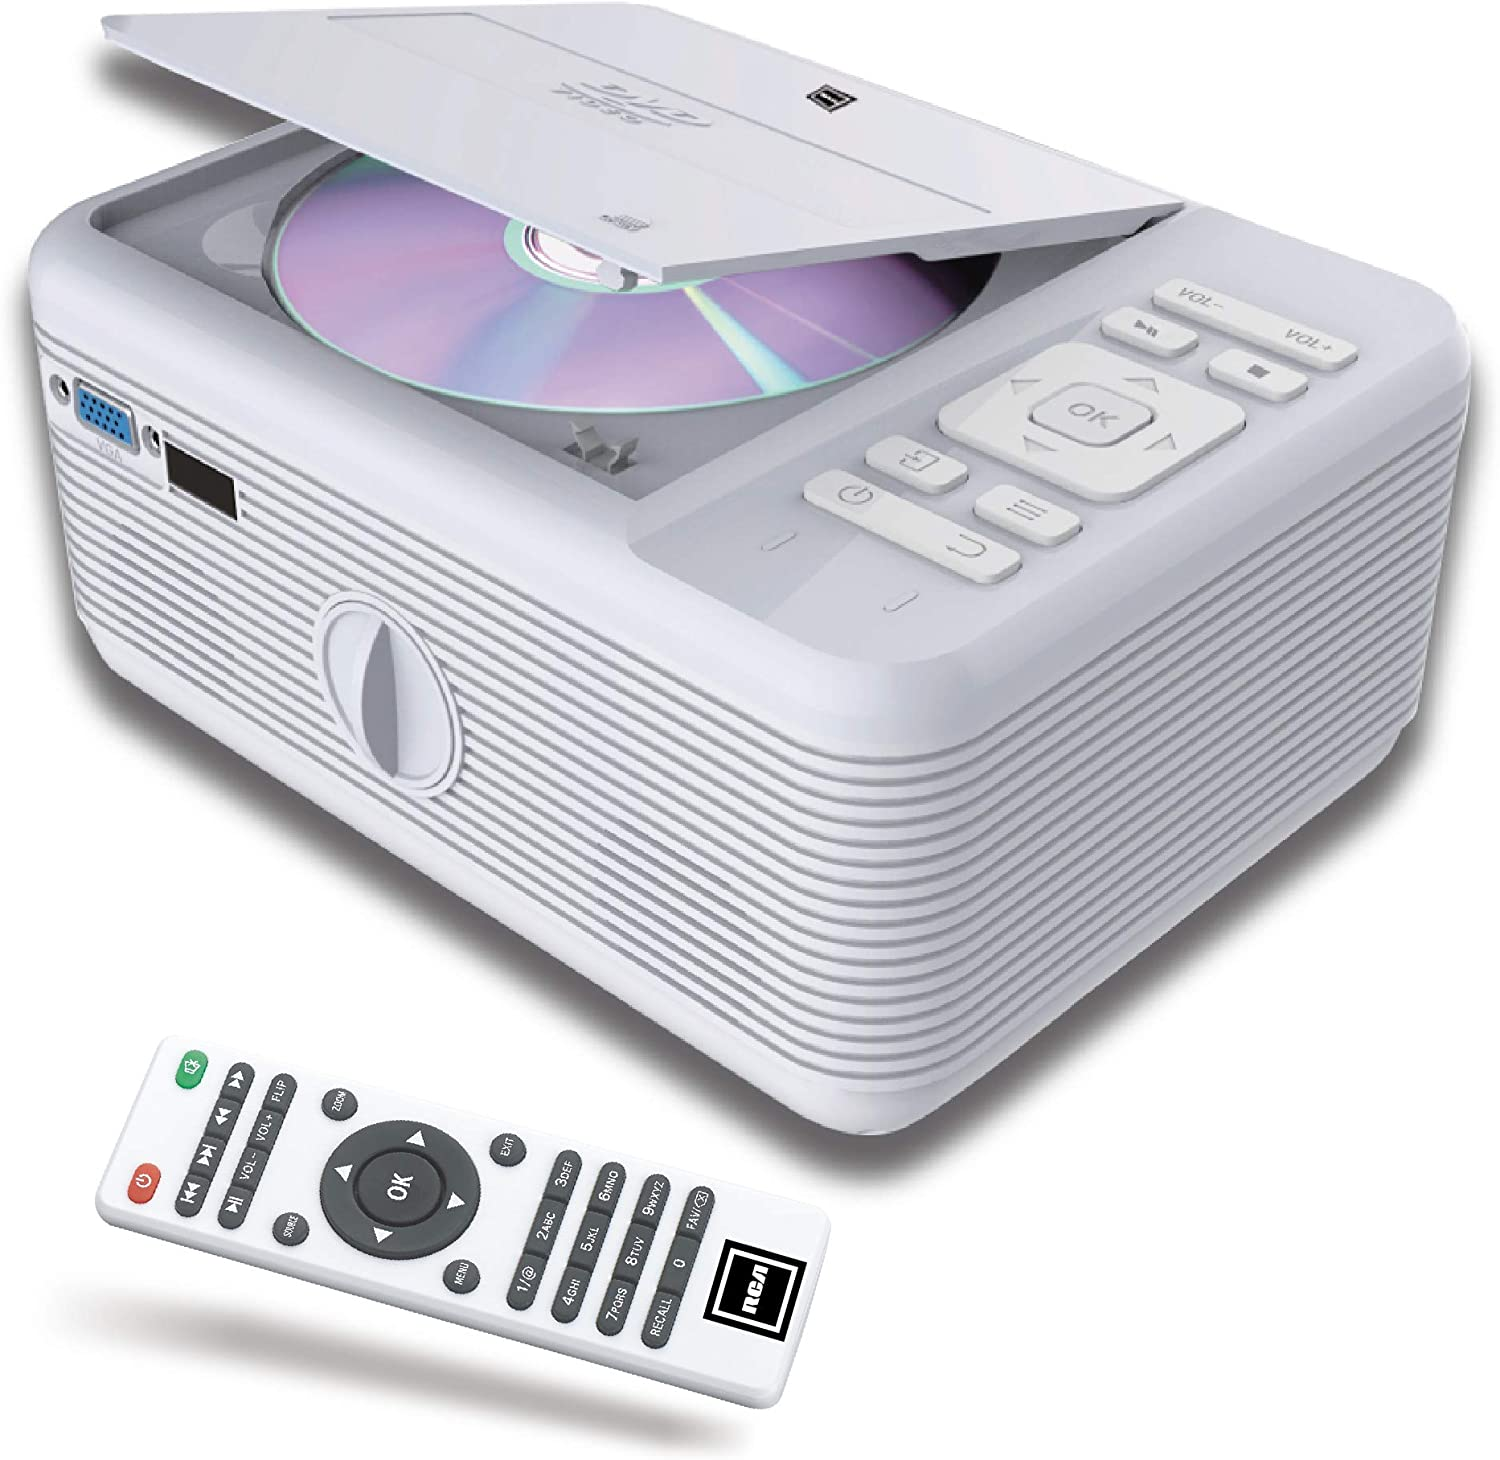 RCA Projectors, Video, Office, Presentations, Screen, HD, 1080p, Android, Wi-Fi (Built-in Bluetooth & DVD Player)